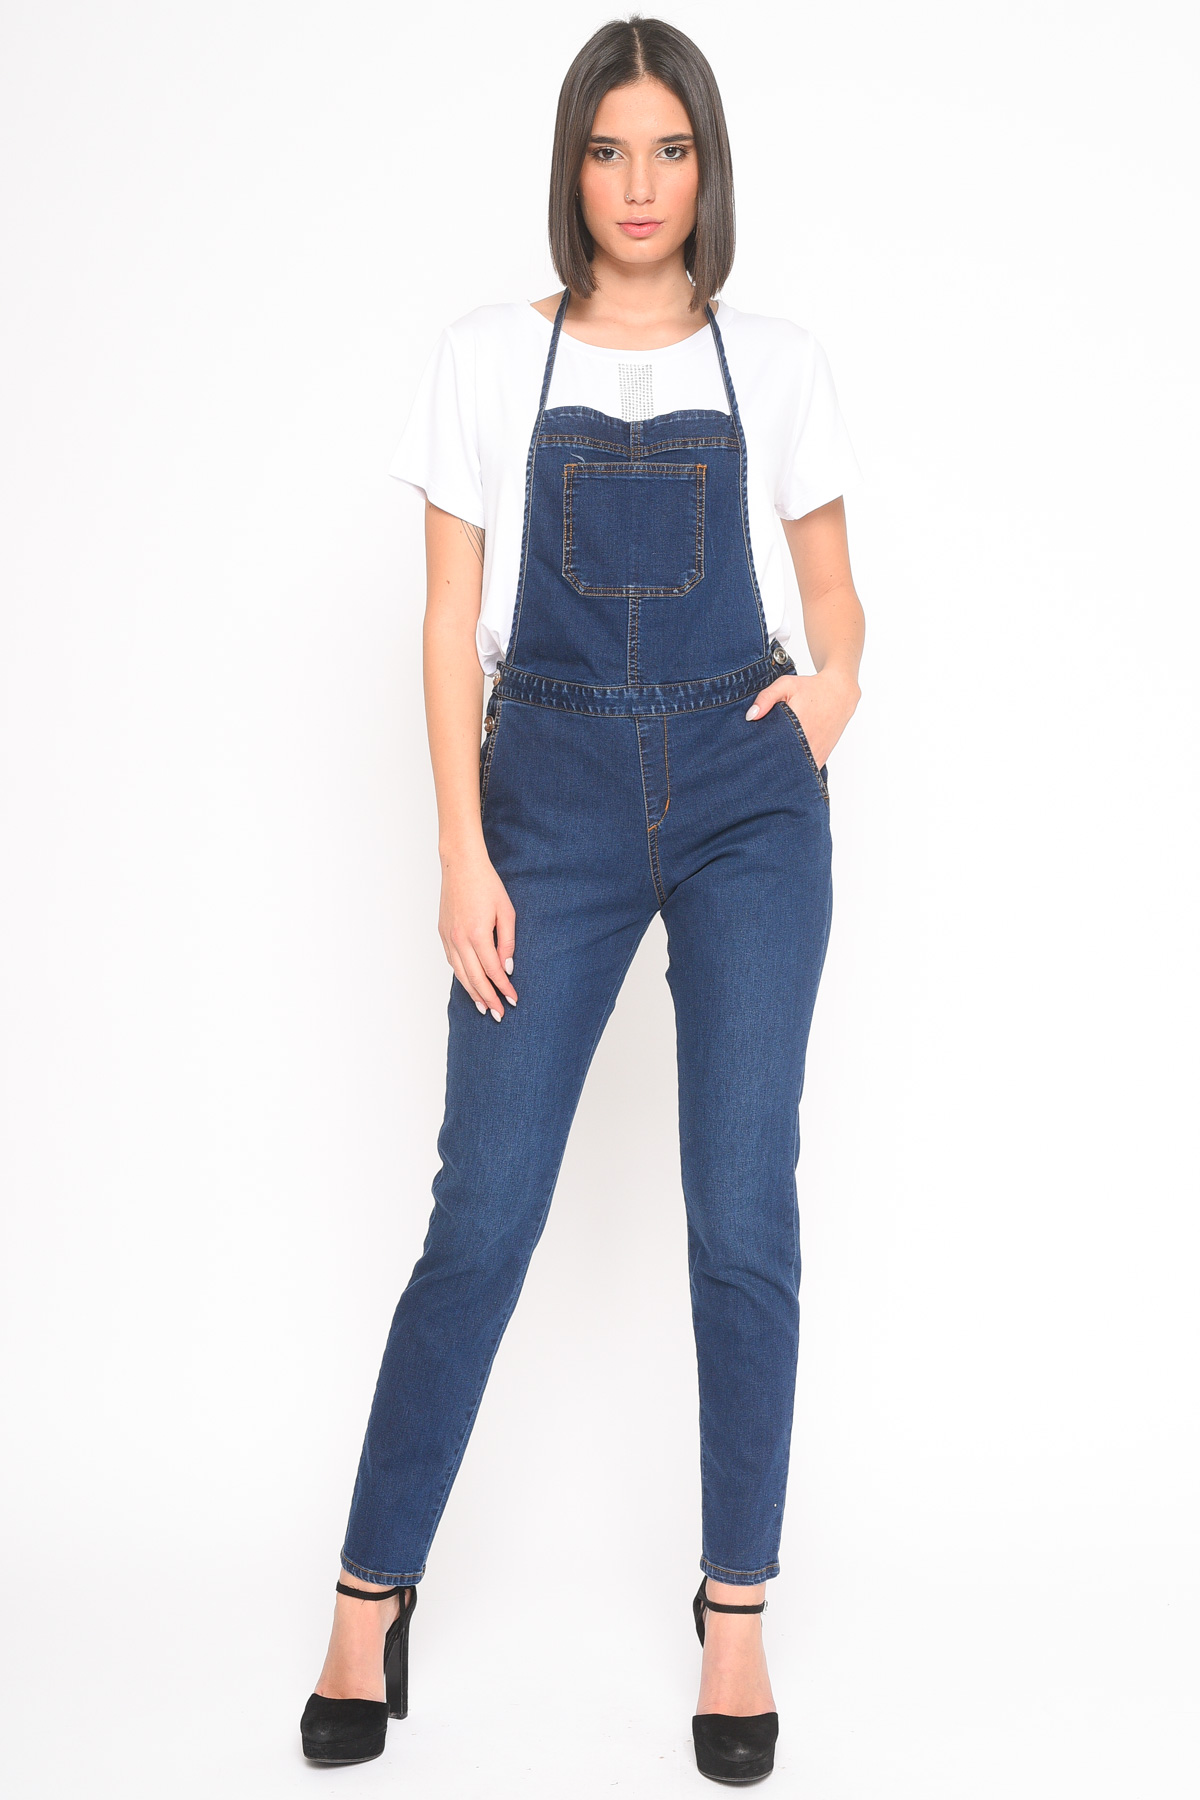 SALOPETTE  DI JEANS for women - ONLY - Paquito Pronto Moda Shop Online